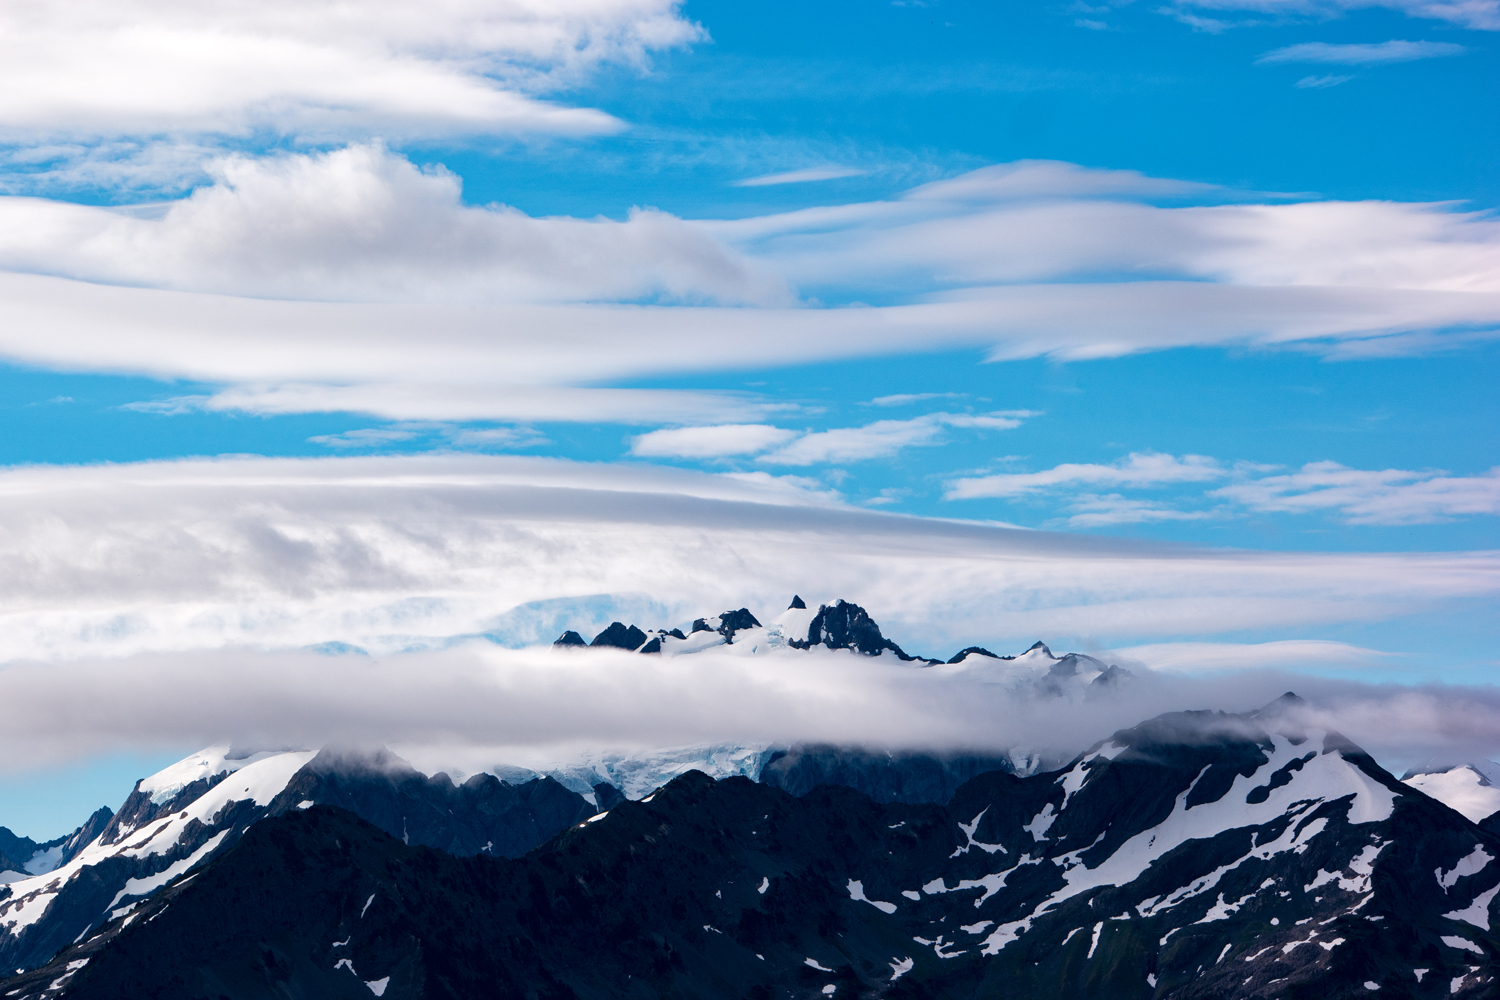 Wasim Muklashy Photography_Olympic National Park_High Divide Loop_039.jpg